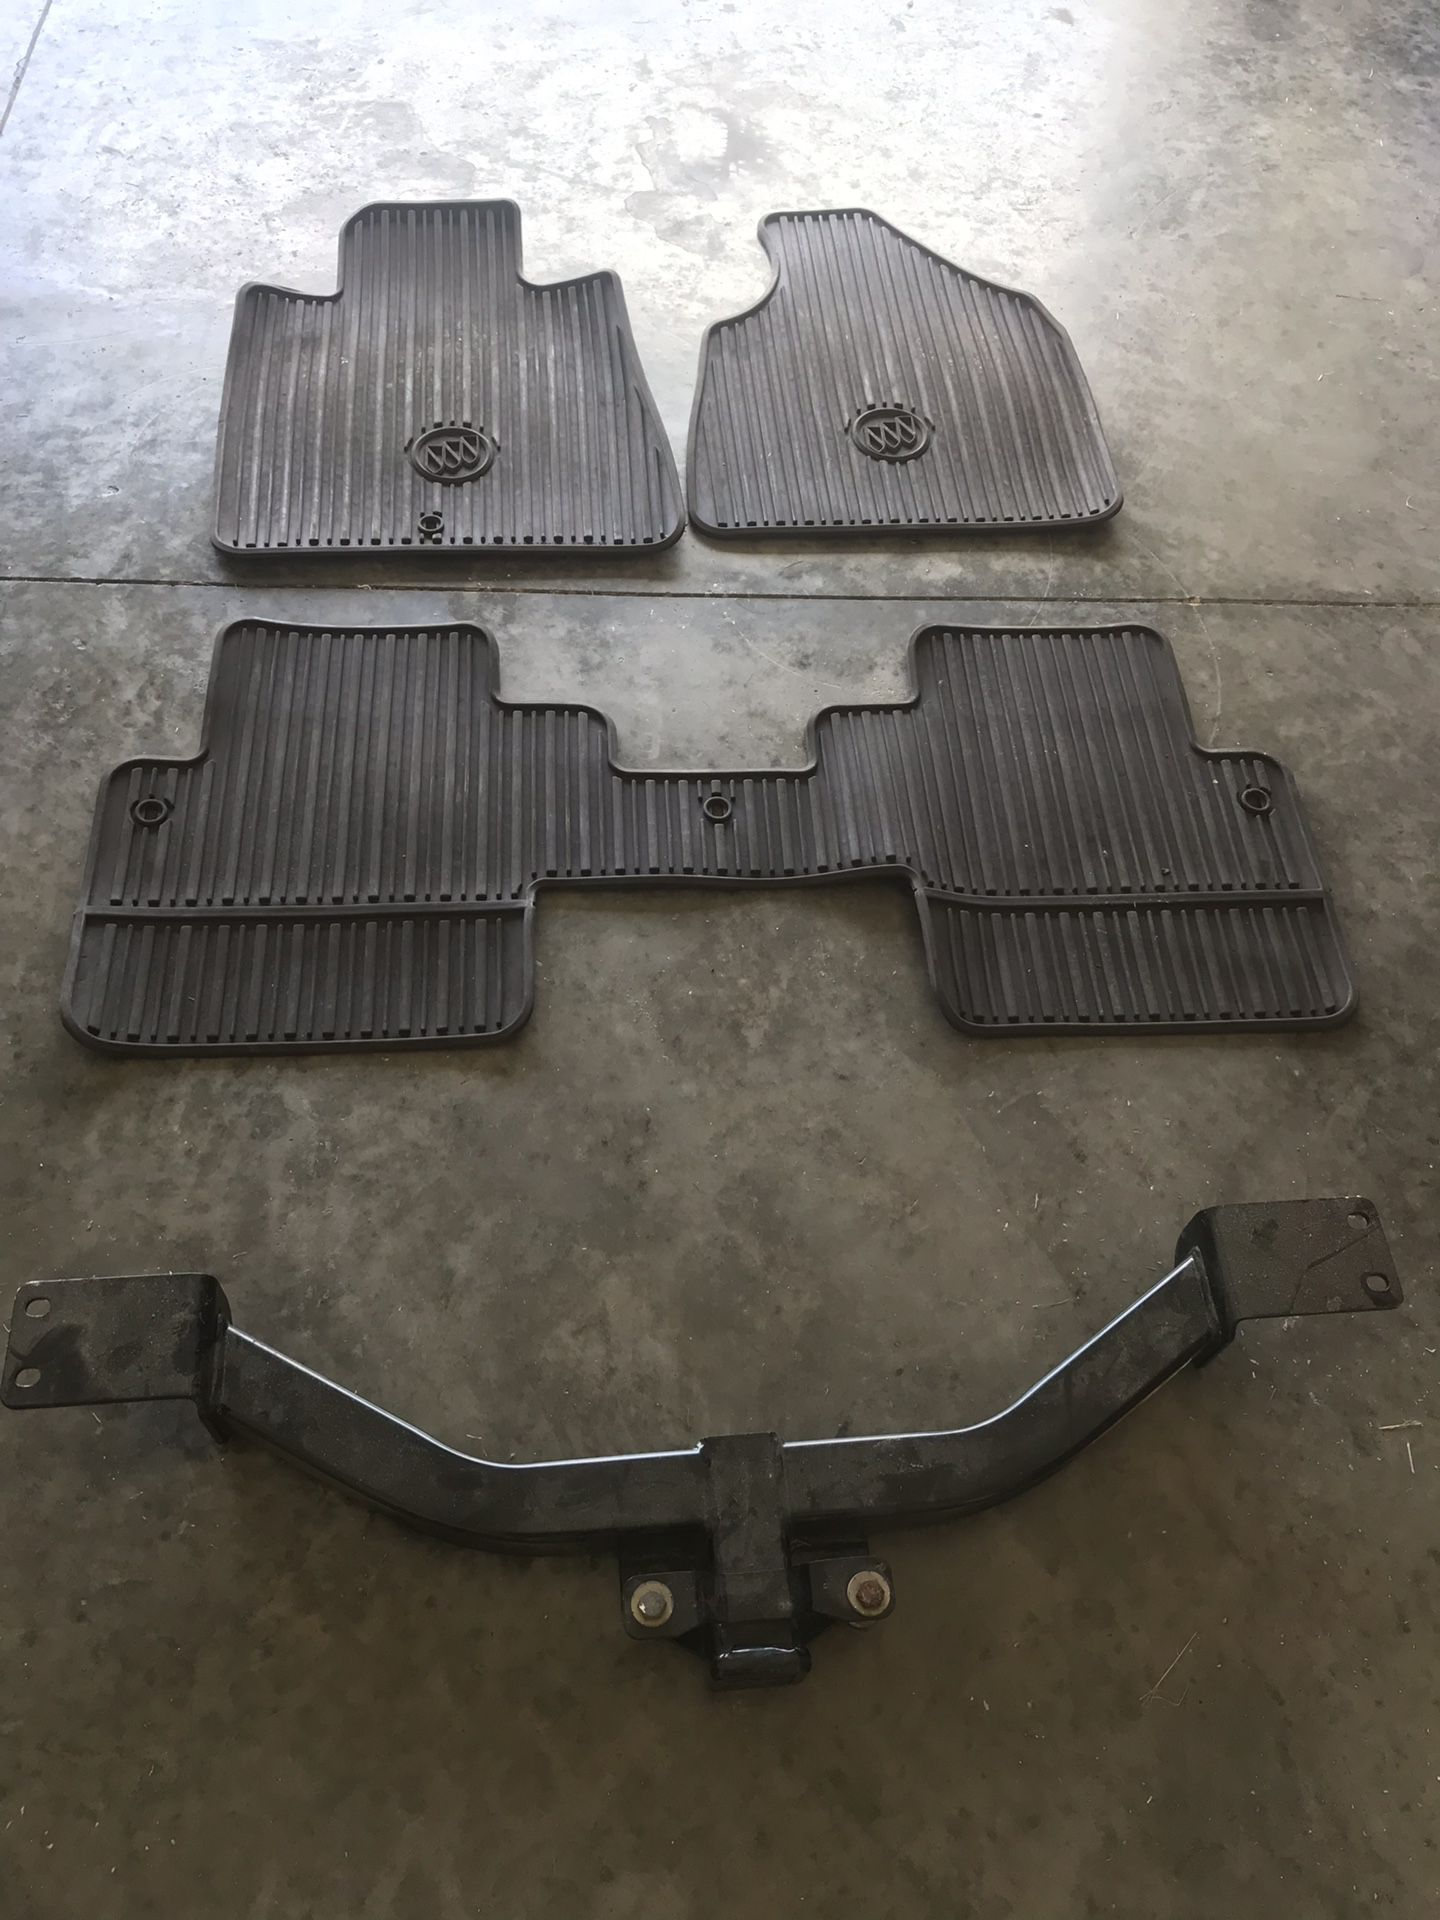 2016 Buick Enclave weather tech floor mats and Tow hitch $ 200.00